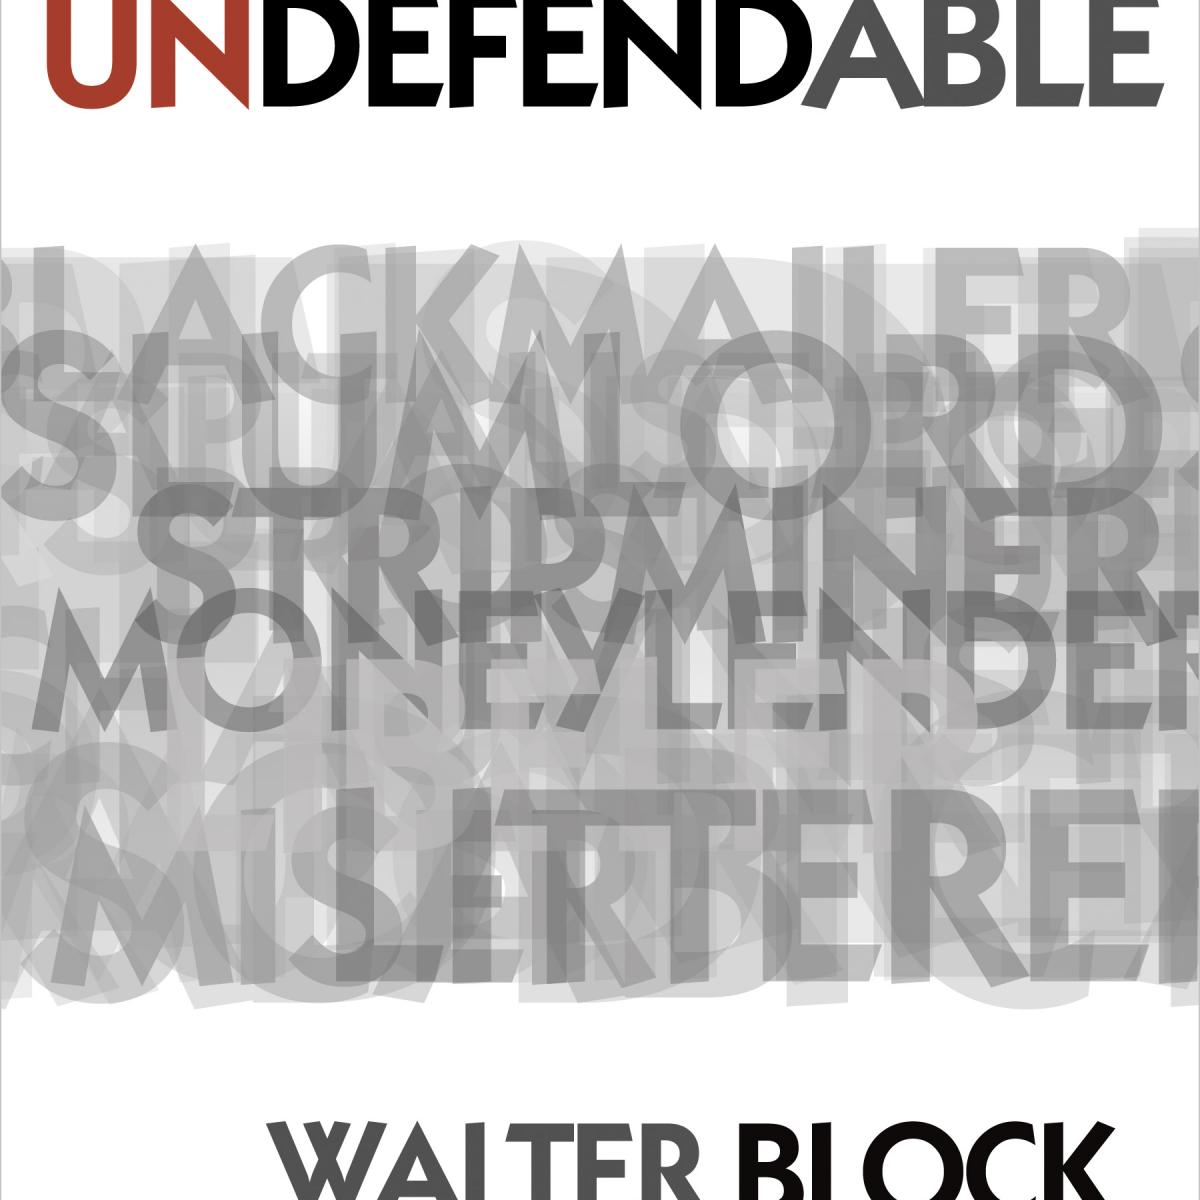 Defending the Undefendable (LvMI)